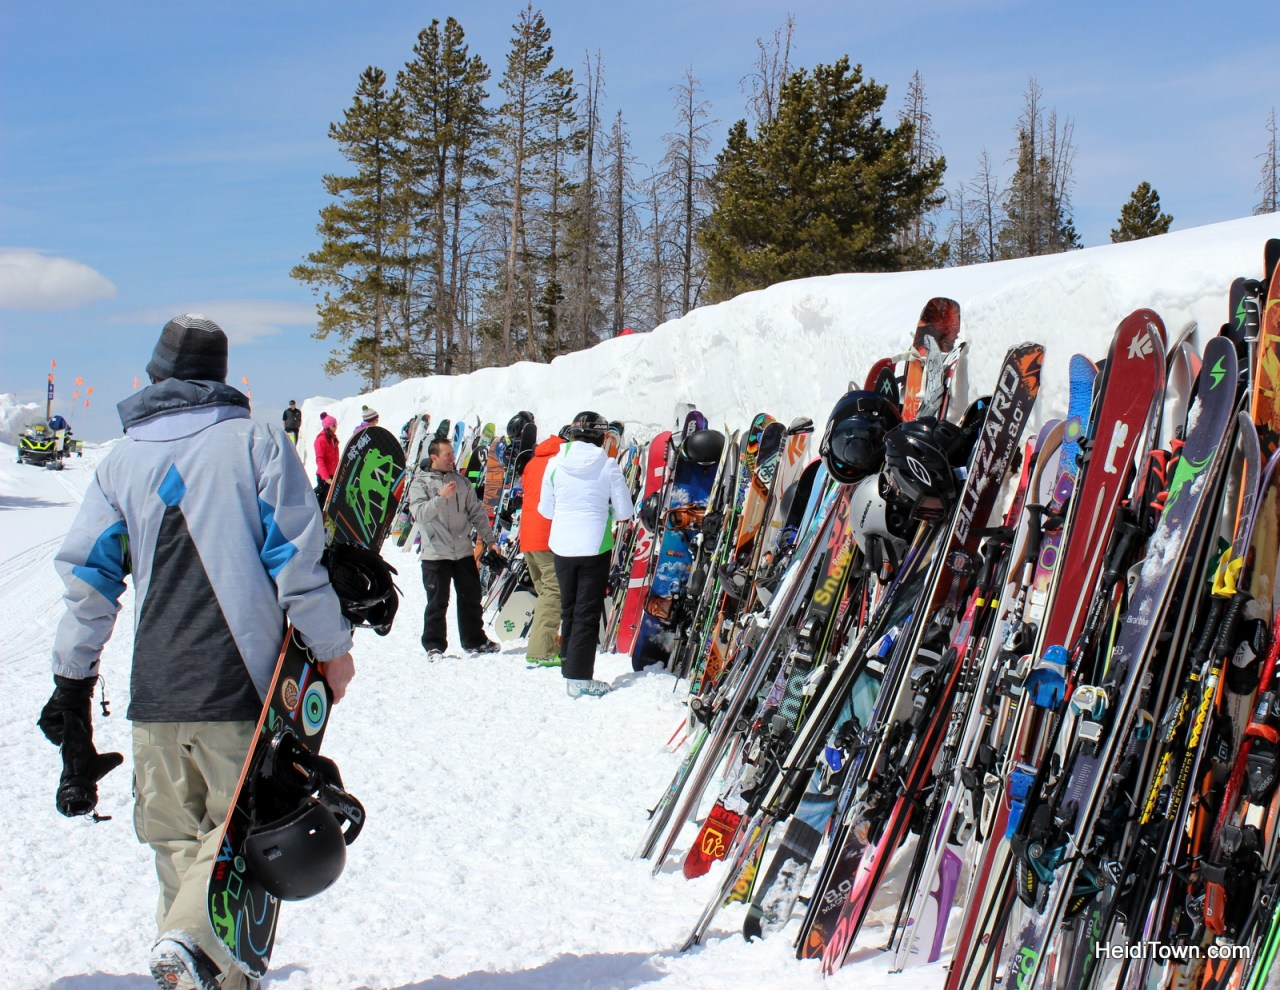 Skis lined up outside the Mountain Top Picnic at the Taste of Vail. Top 5 reasons to attend the Taste of Vail. HeidiTown.com